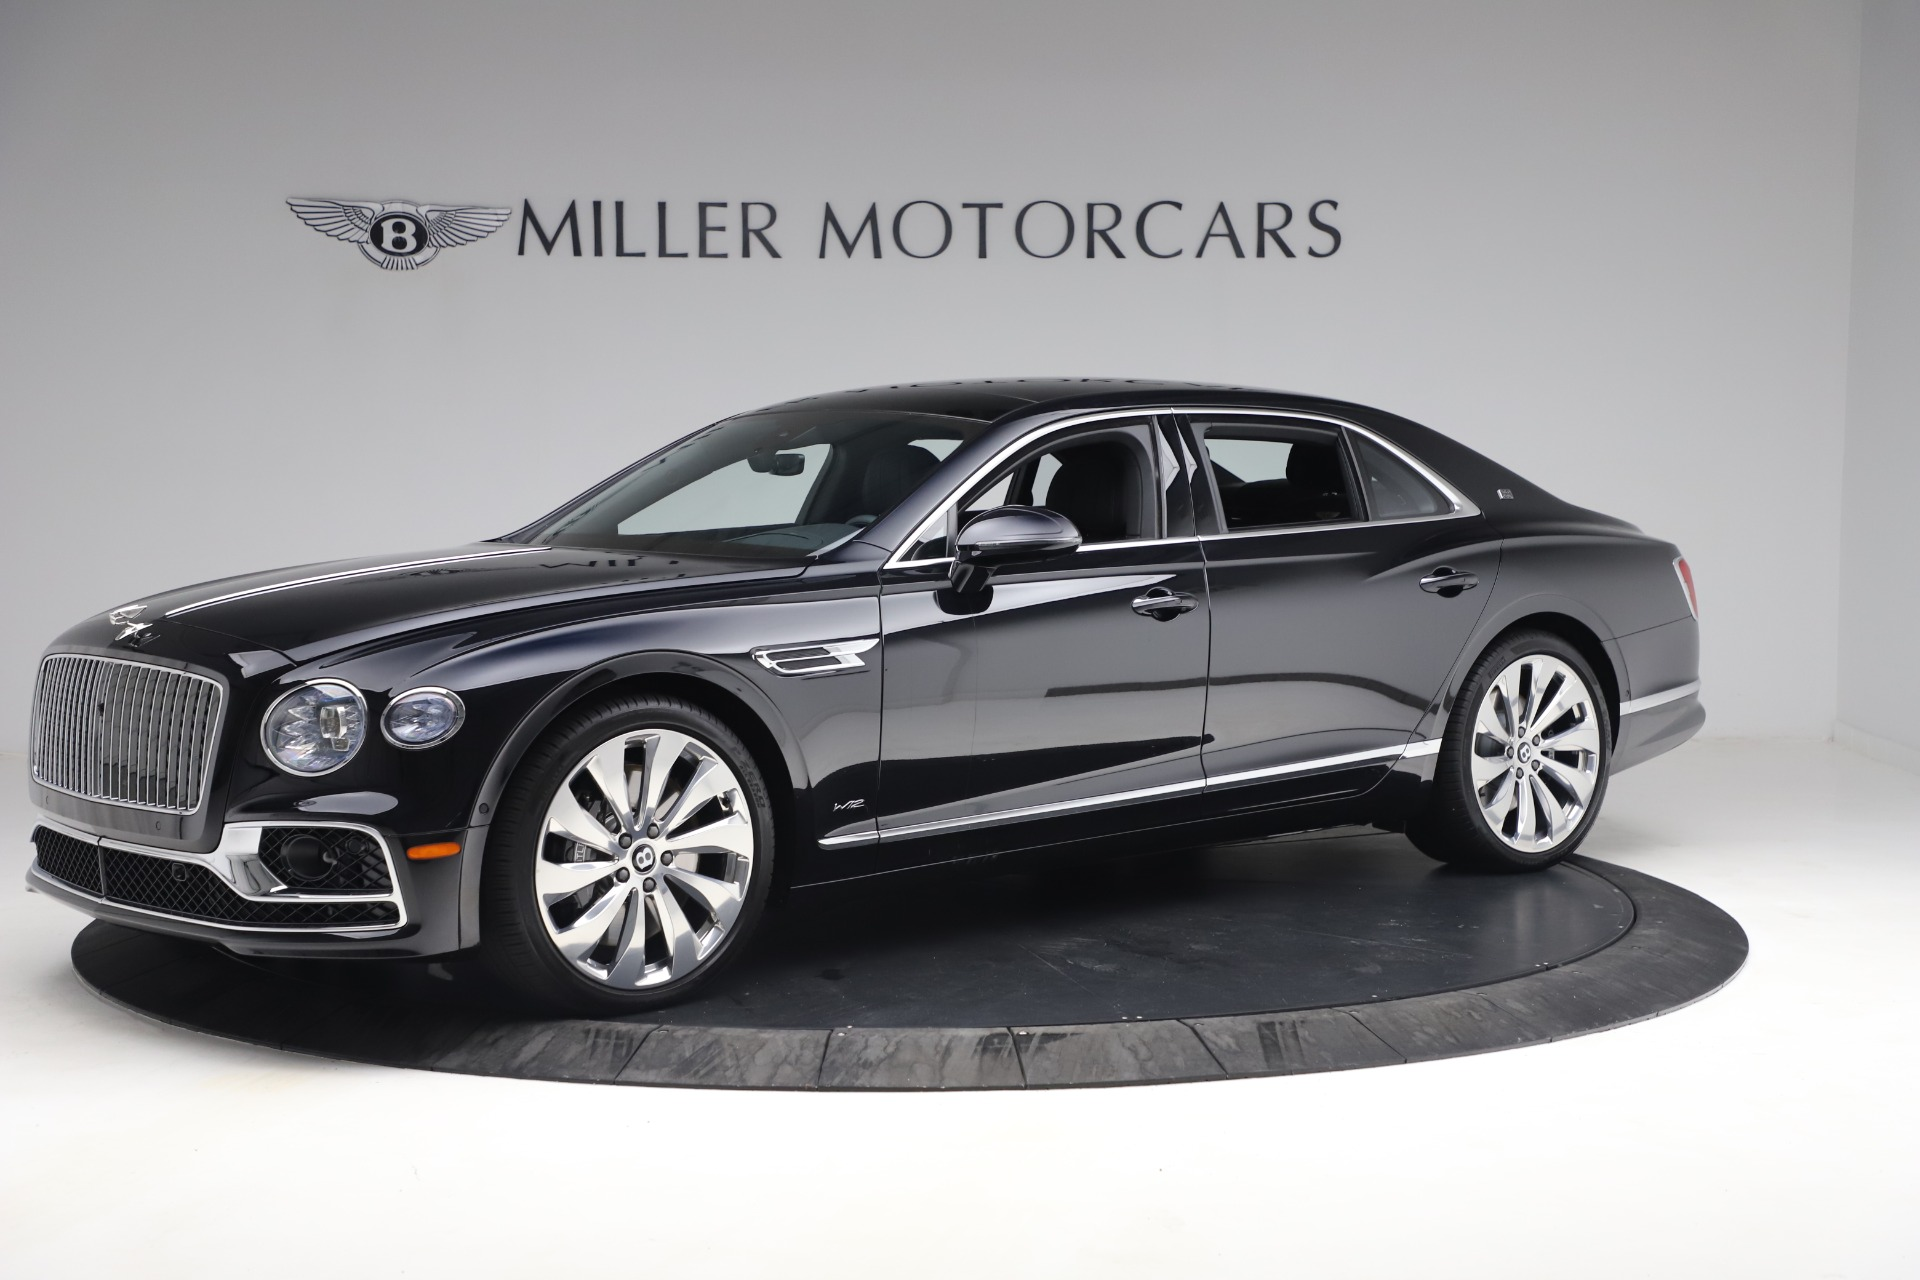 Used 2020 Bentley Flying Spur W12 First Edition for sale Sold at Bugatti of Greenwich in Greenwich CT 06830 1